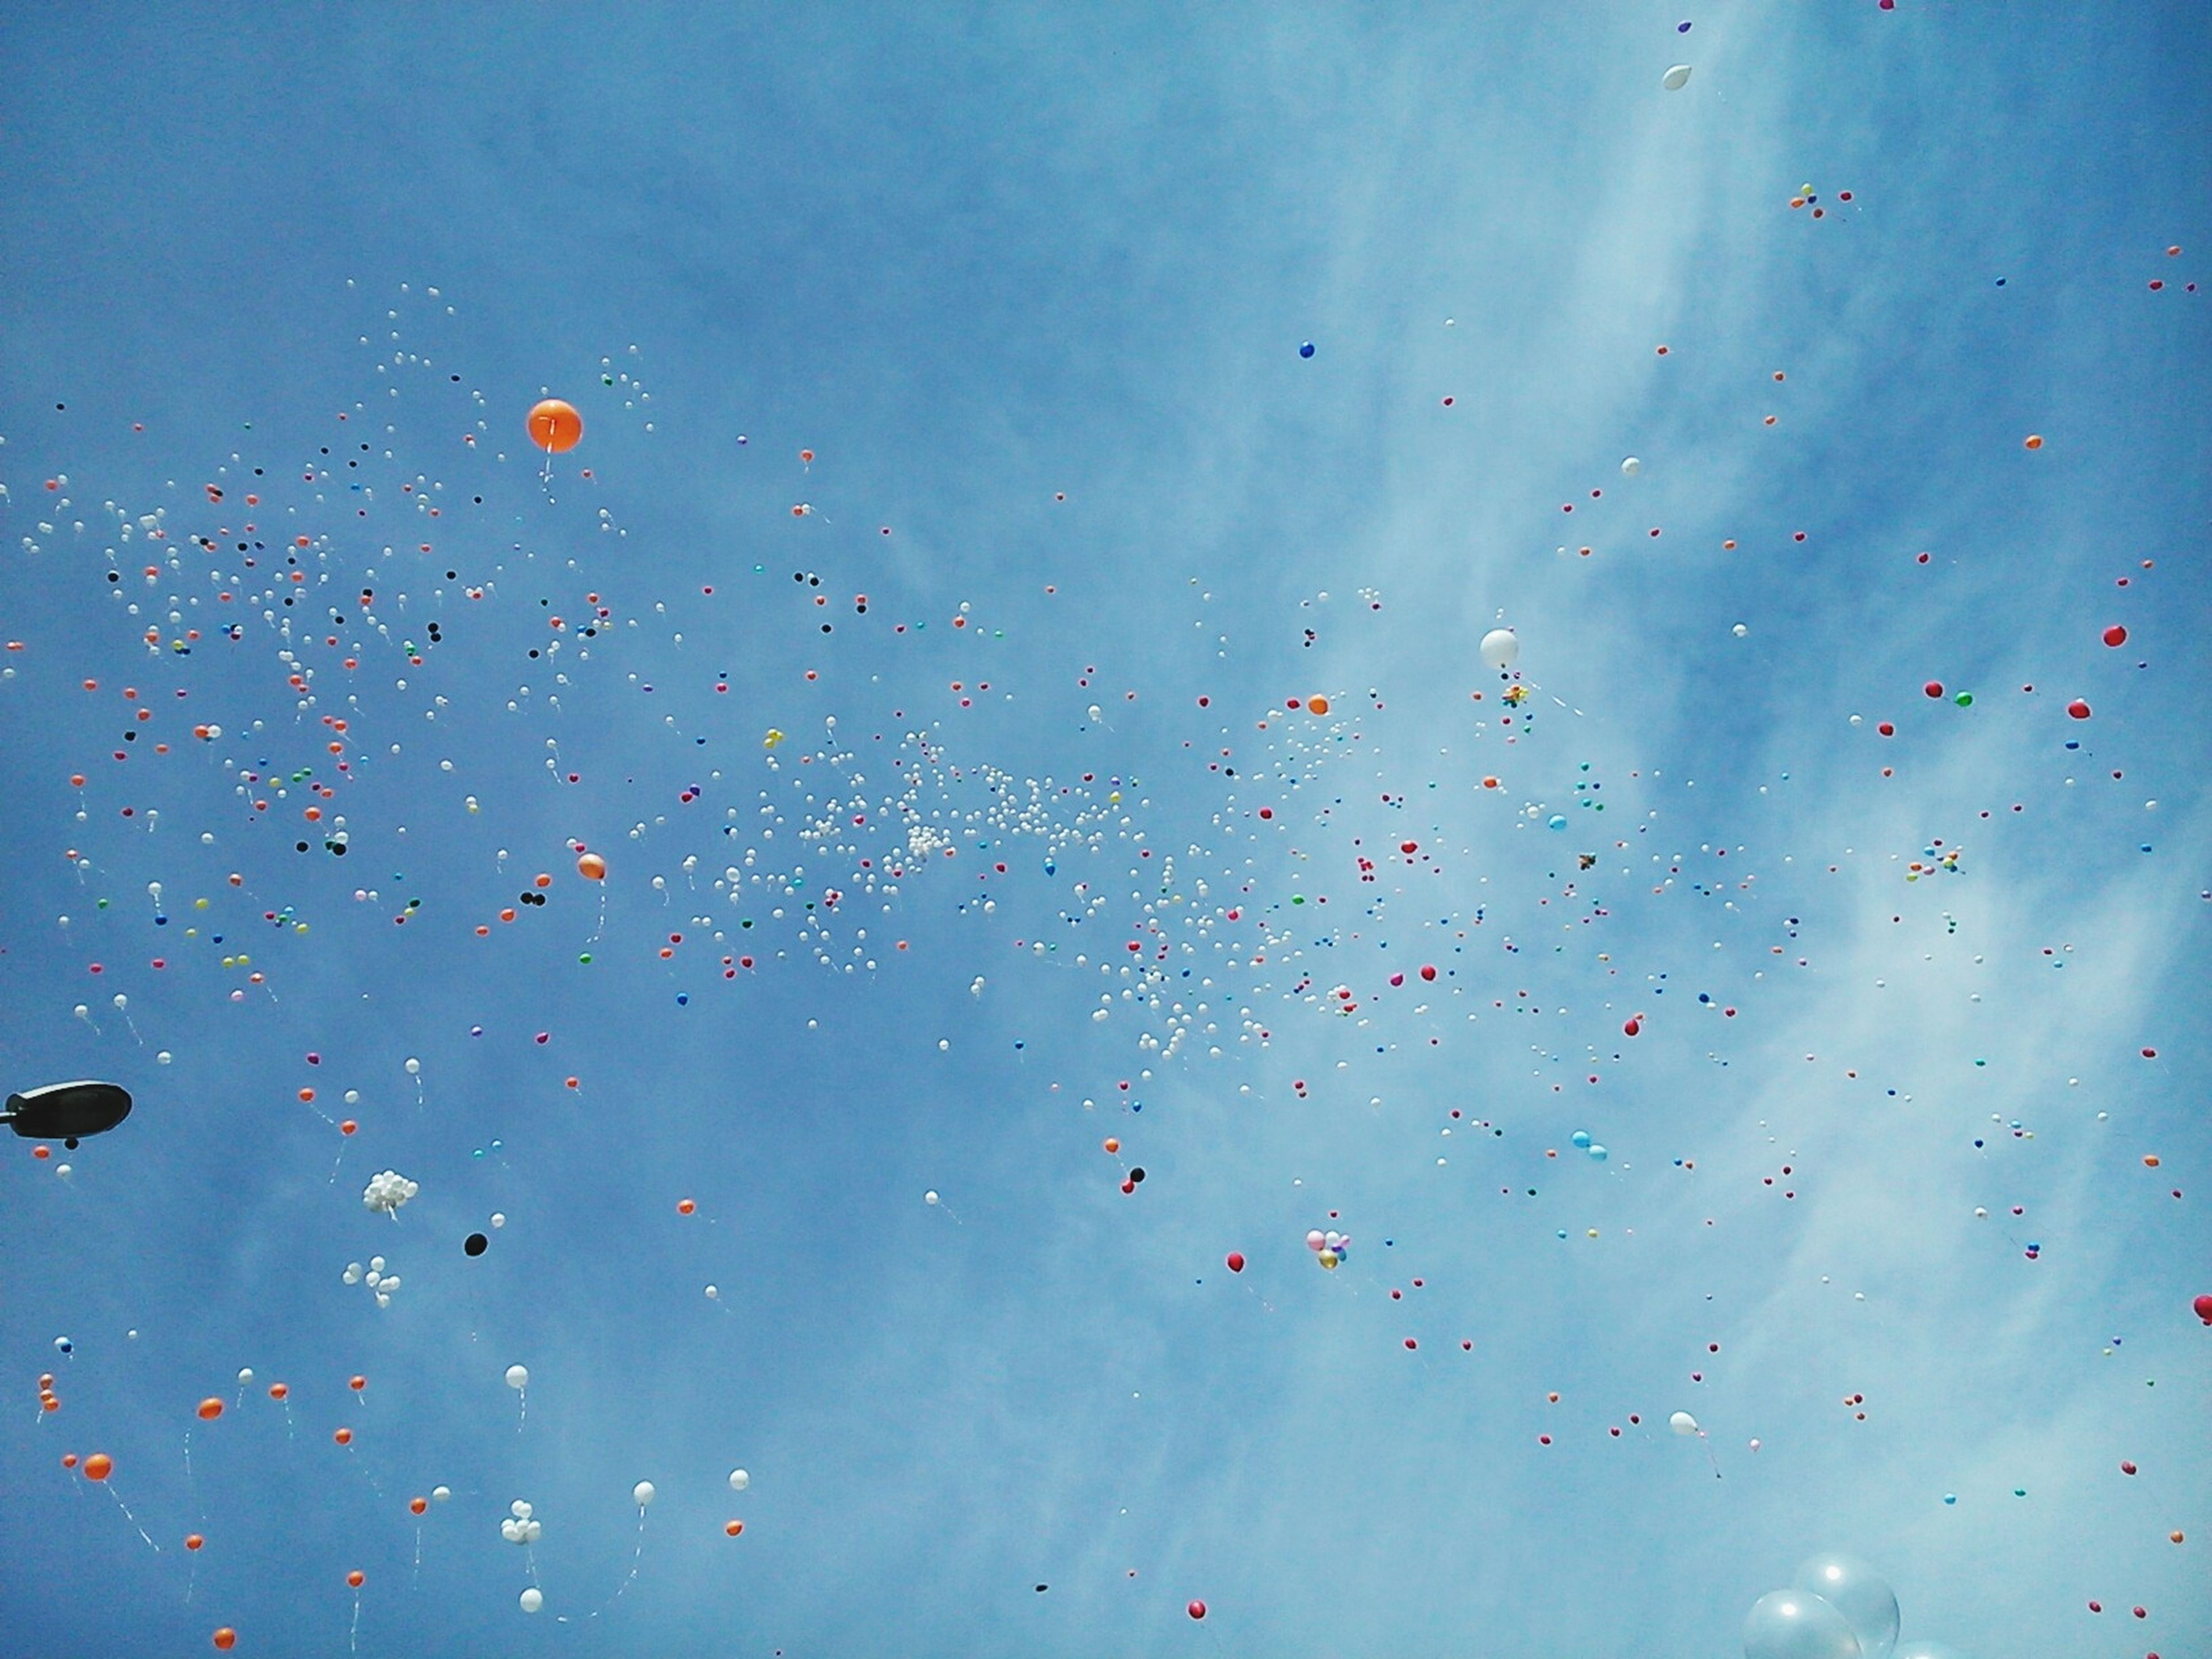 flying, low angle view, mid-air, flock of birds, sky, blue, animal themes, animals in the wild, bird, wildlife, nature, outdoors, day, motion, no people, beauty in nature, cloud - sky, multi colored, balloon